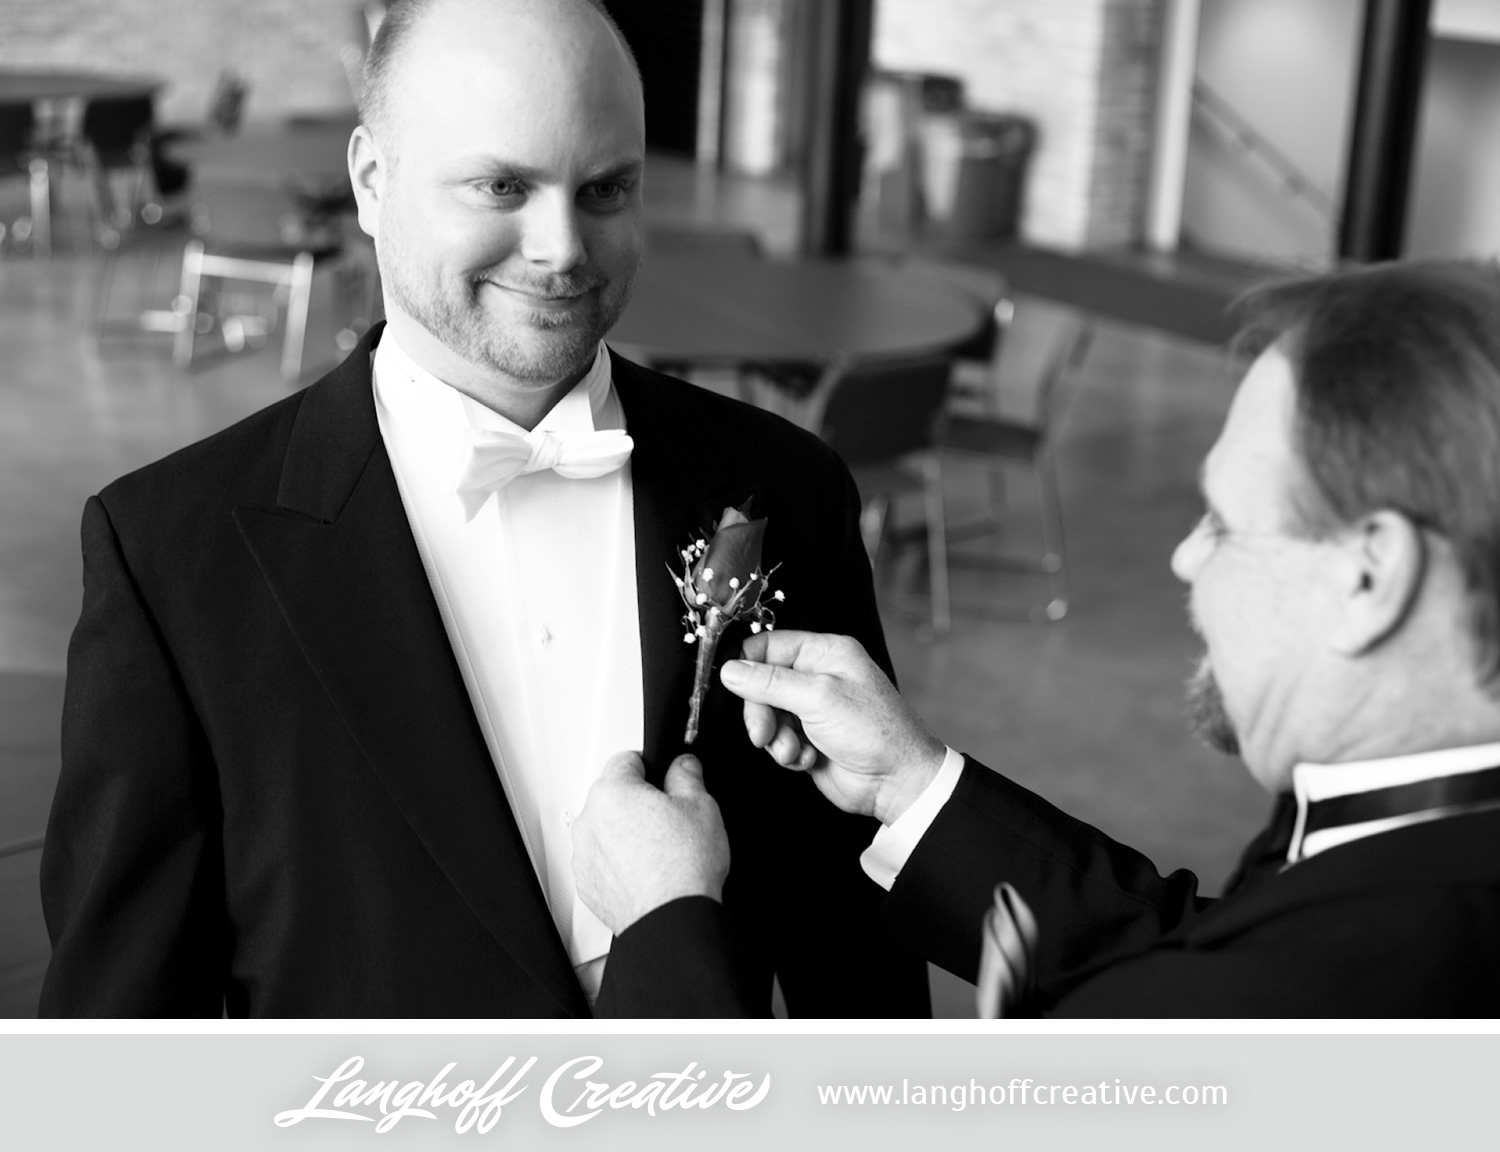 A father - son moment before the wedding.